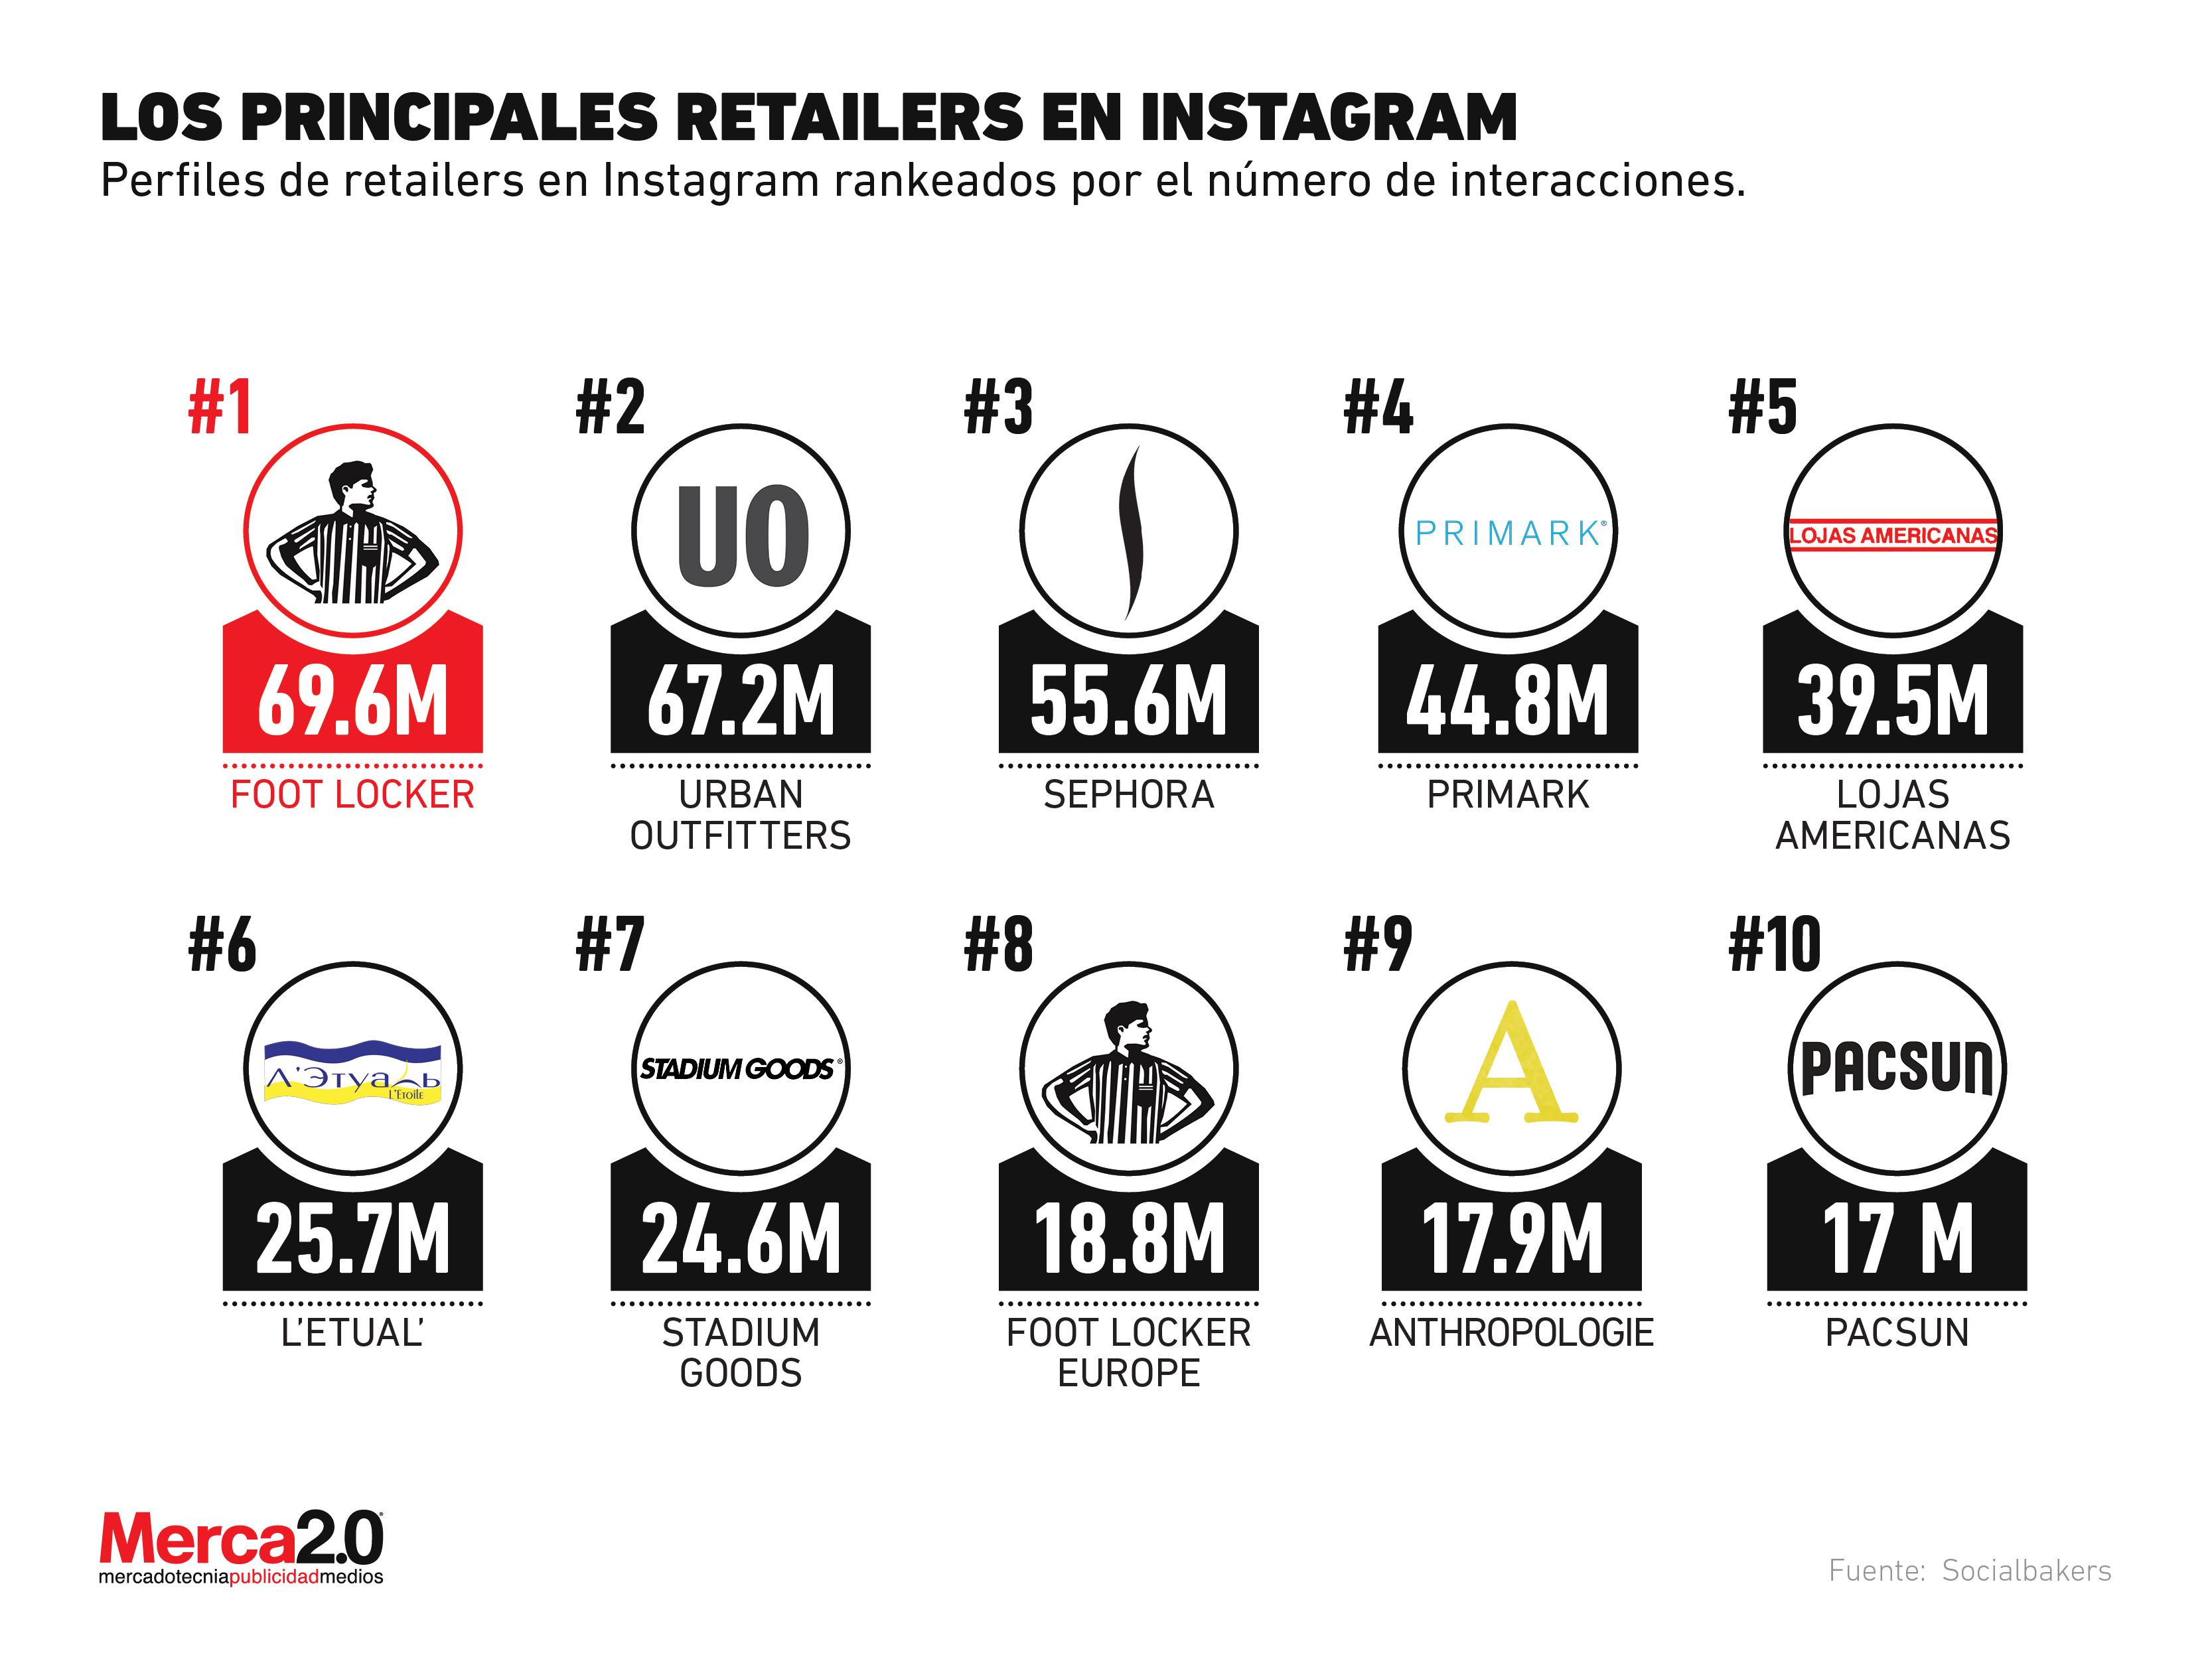 The most important retailers on Instagram